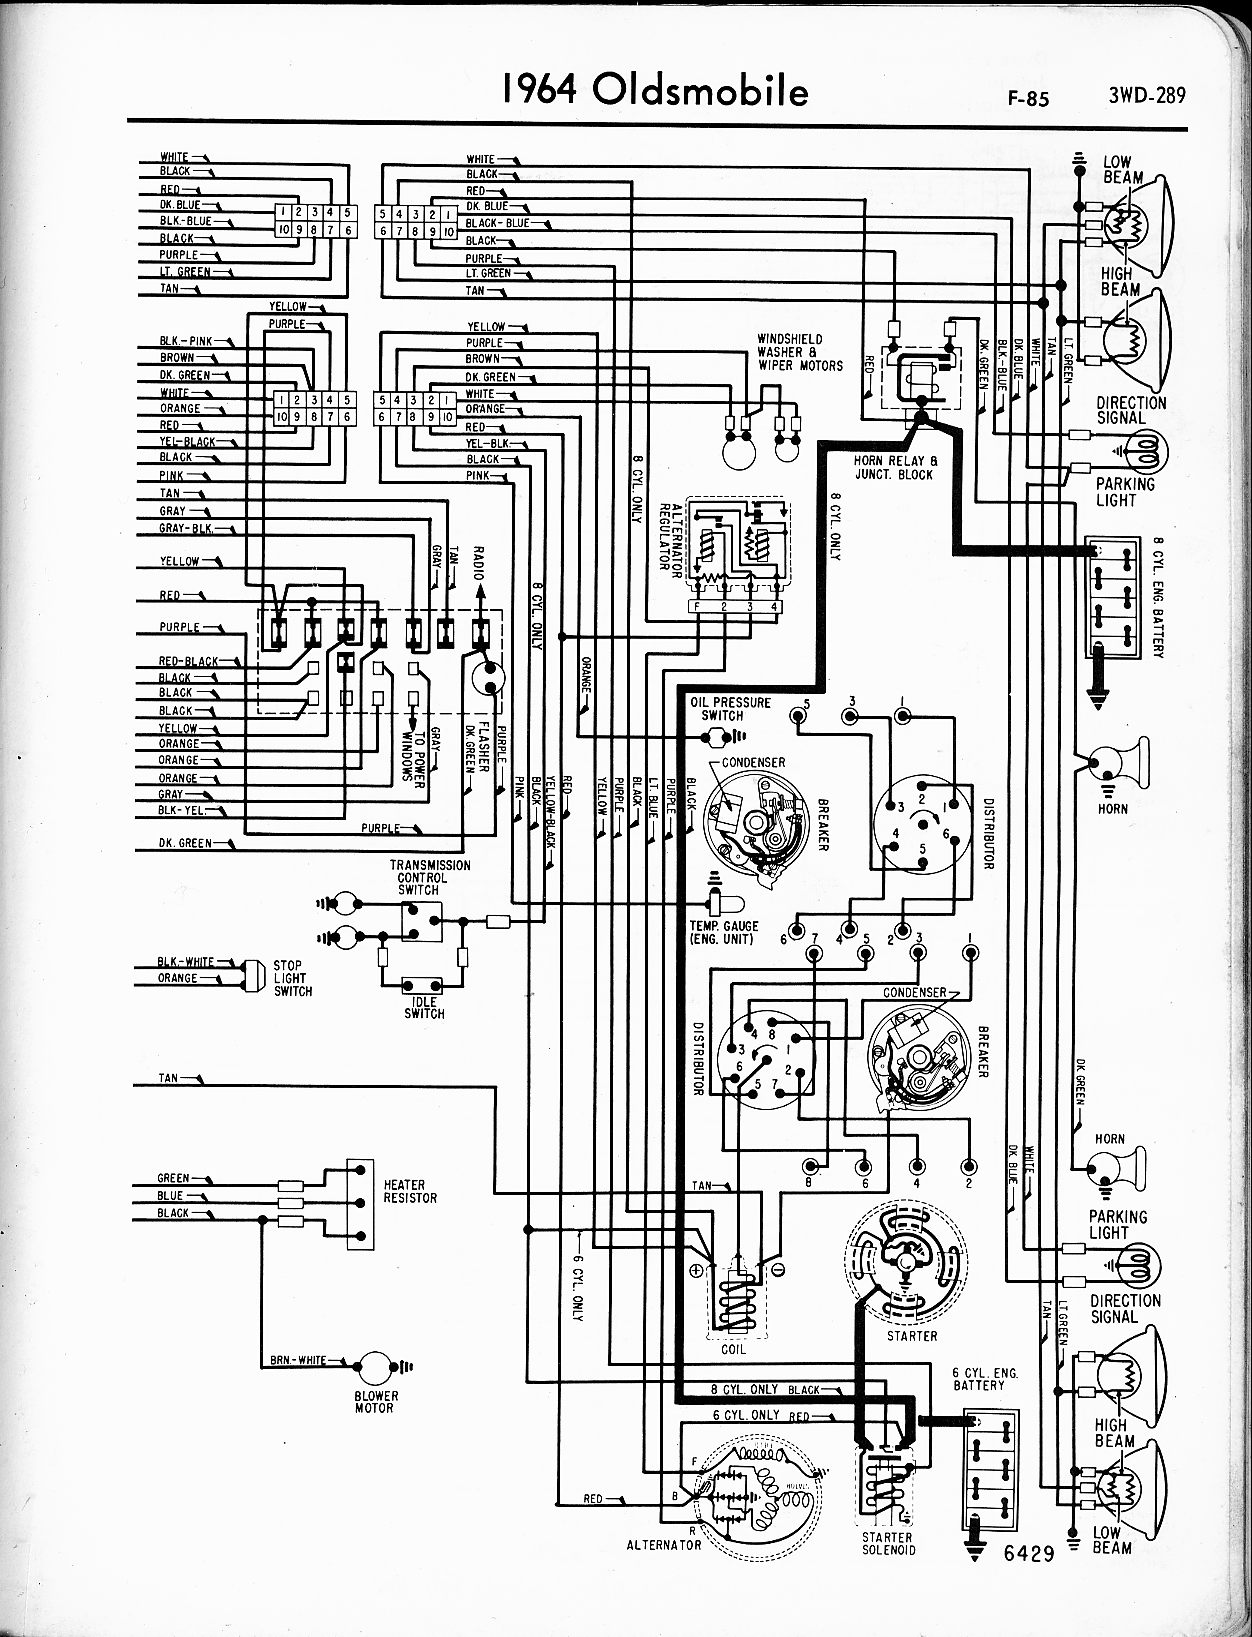 Oldsmobile 98 Wiring Diagrams - Auto Electrical Wiring Diagram on 1999 f150 thermostat, 2002 f150 wiring diagram, 1999 f150 cooling system, f150 4x4 front end diagram, 1999 f150 radiator, 94 f150 wiring diagram, 1999 f150 suspension, 1989 f150 wiring diagram, f150 starter wiring diagram, 1999 f150 clutch, 99 f150 wiring diagram, 2000 f150 wiring diagram, 1990 ford f-150 wiring diagram, ford f150 wiring diagram, 1999 f150 exhaust, 1999 f150 will not start, 1999 f150 brochure, 1998 f150 wiring diagram, 2003 f150 wiring diagram, 1999 f150 coil,